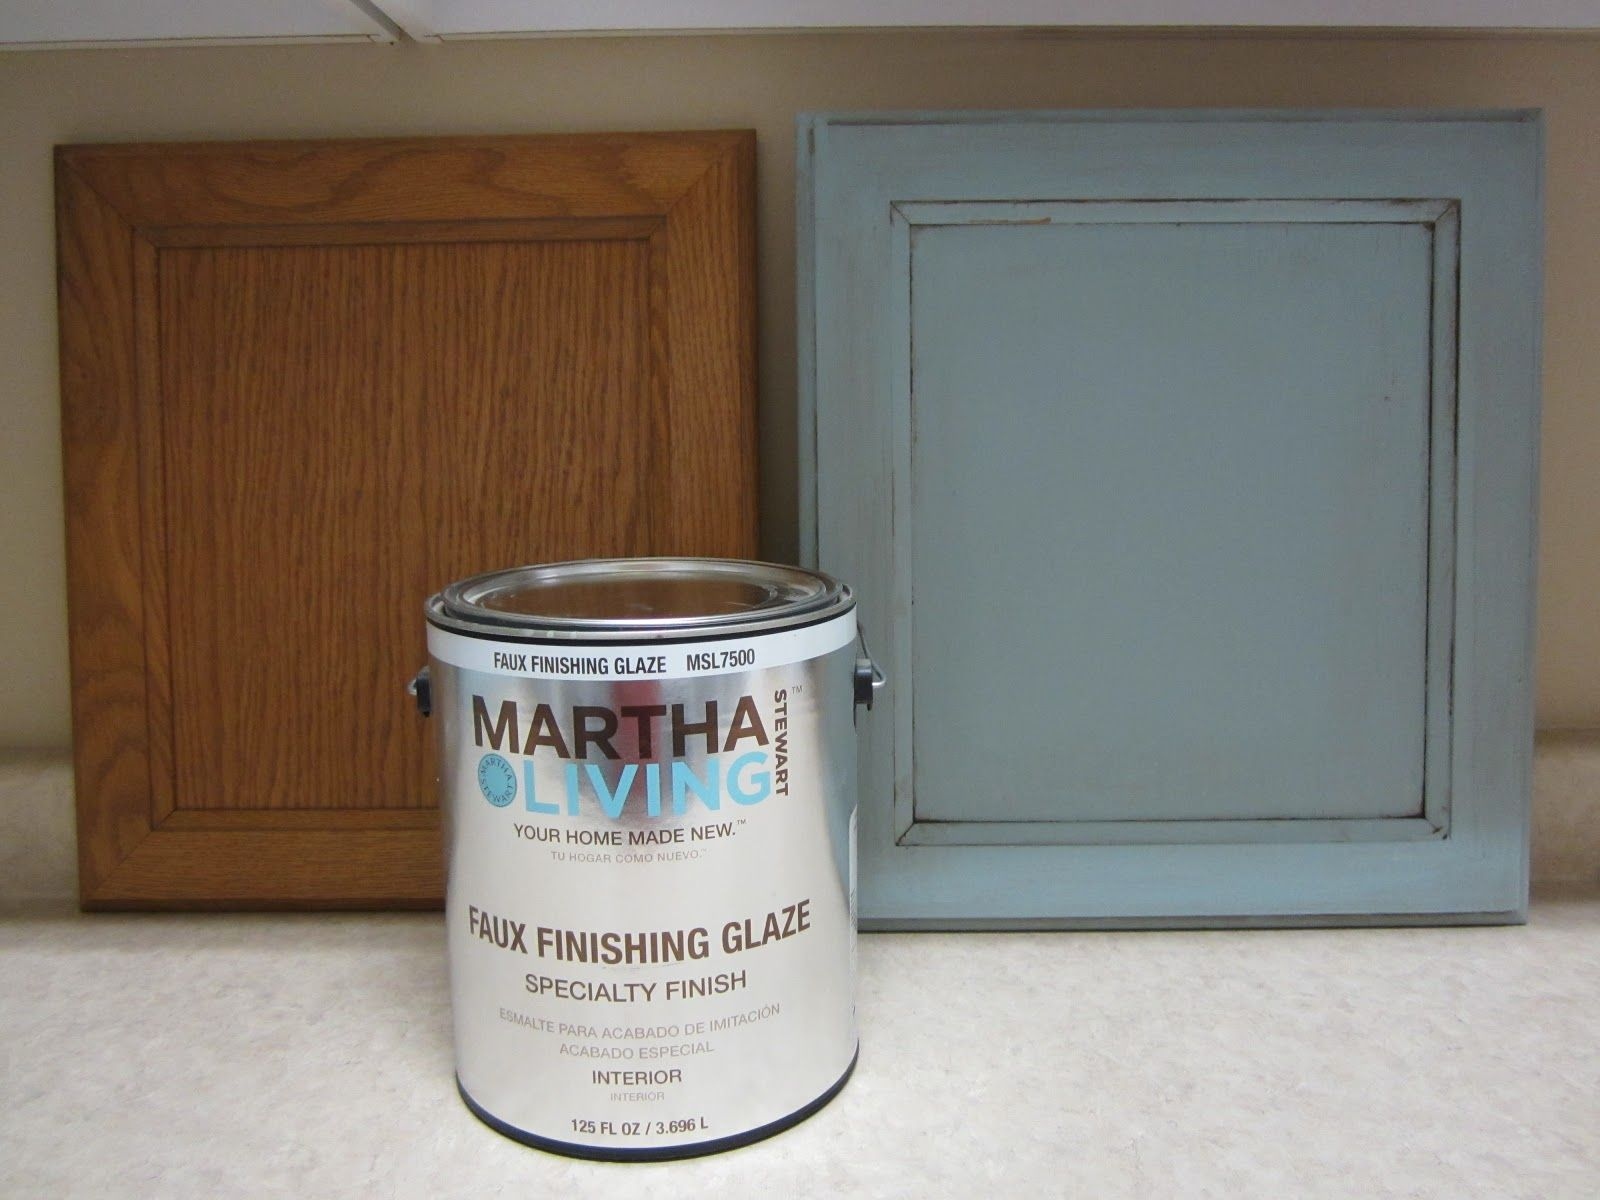 Amazing Martha Stewart Living Glaze To Paint Desk In Craft Room